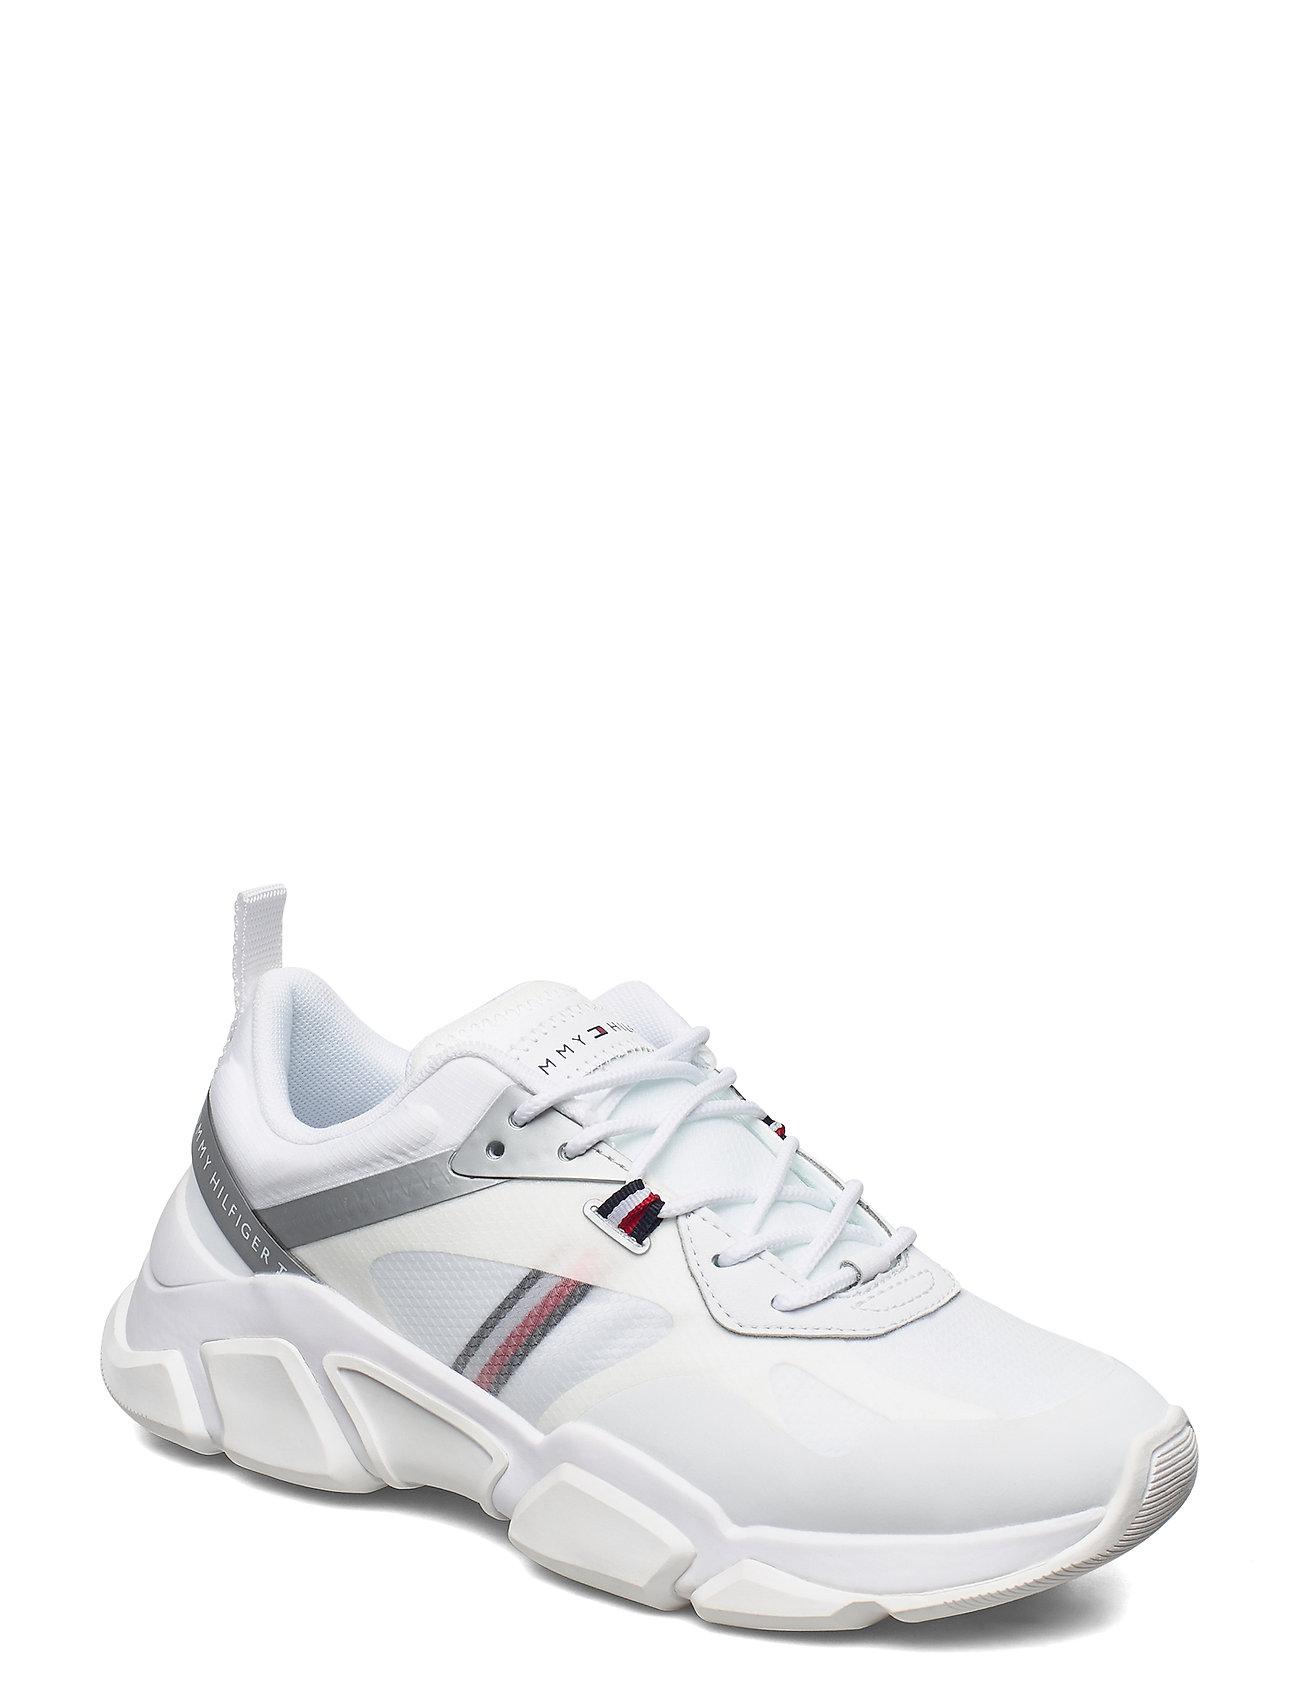 Image of Technical Chunky Tommy Sneaker Low-top Sneakers Hvid Tommy Hilfiger (3448709305)